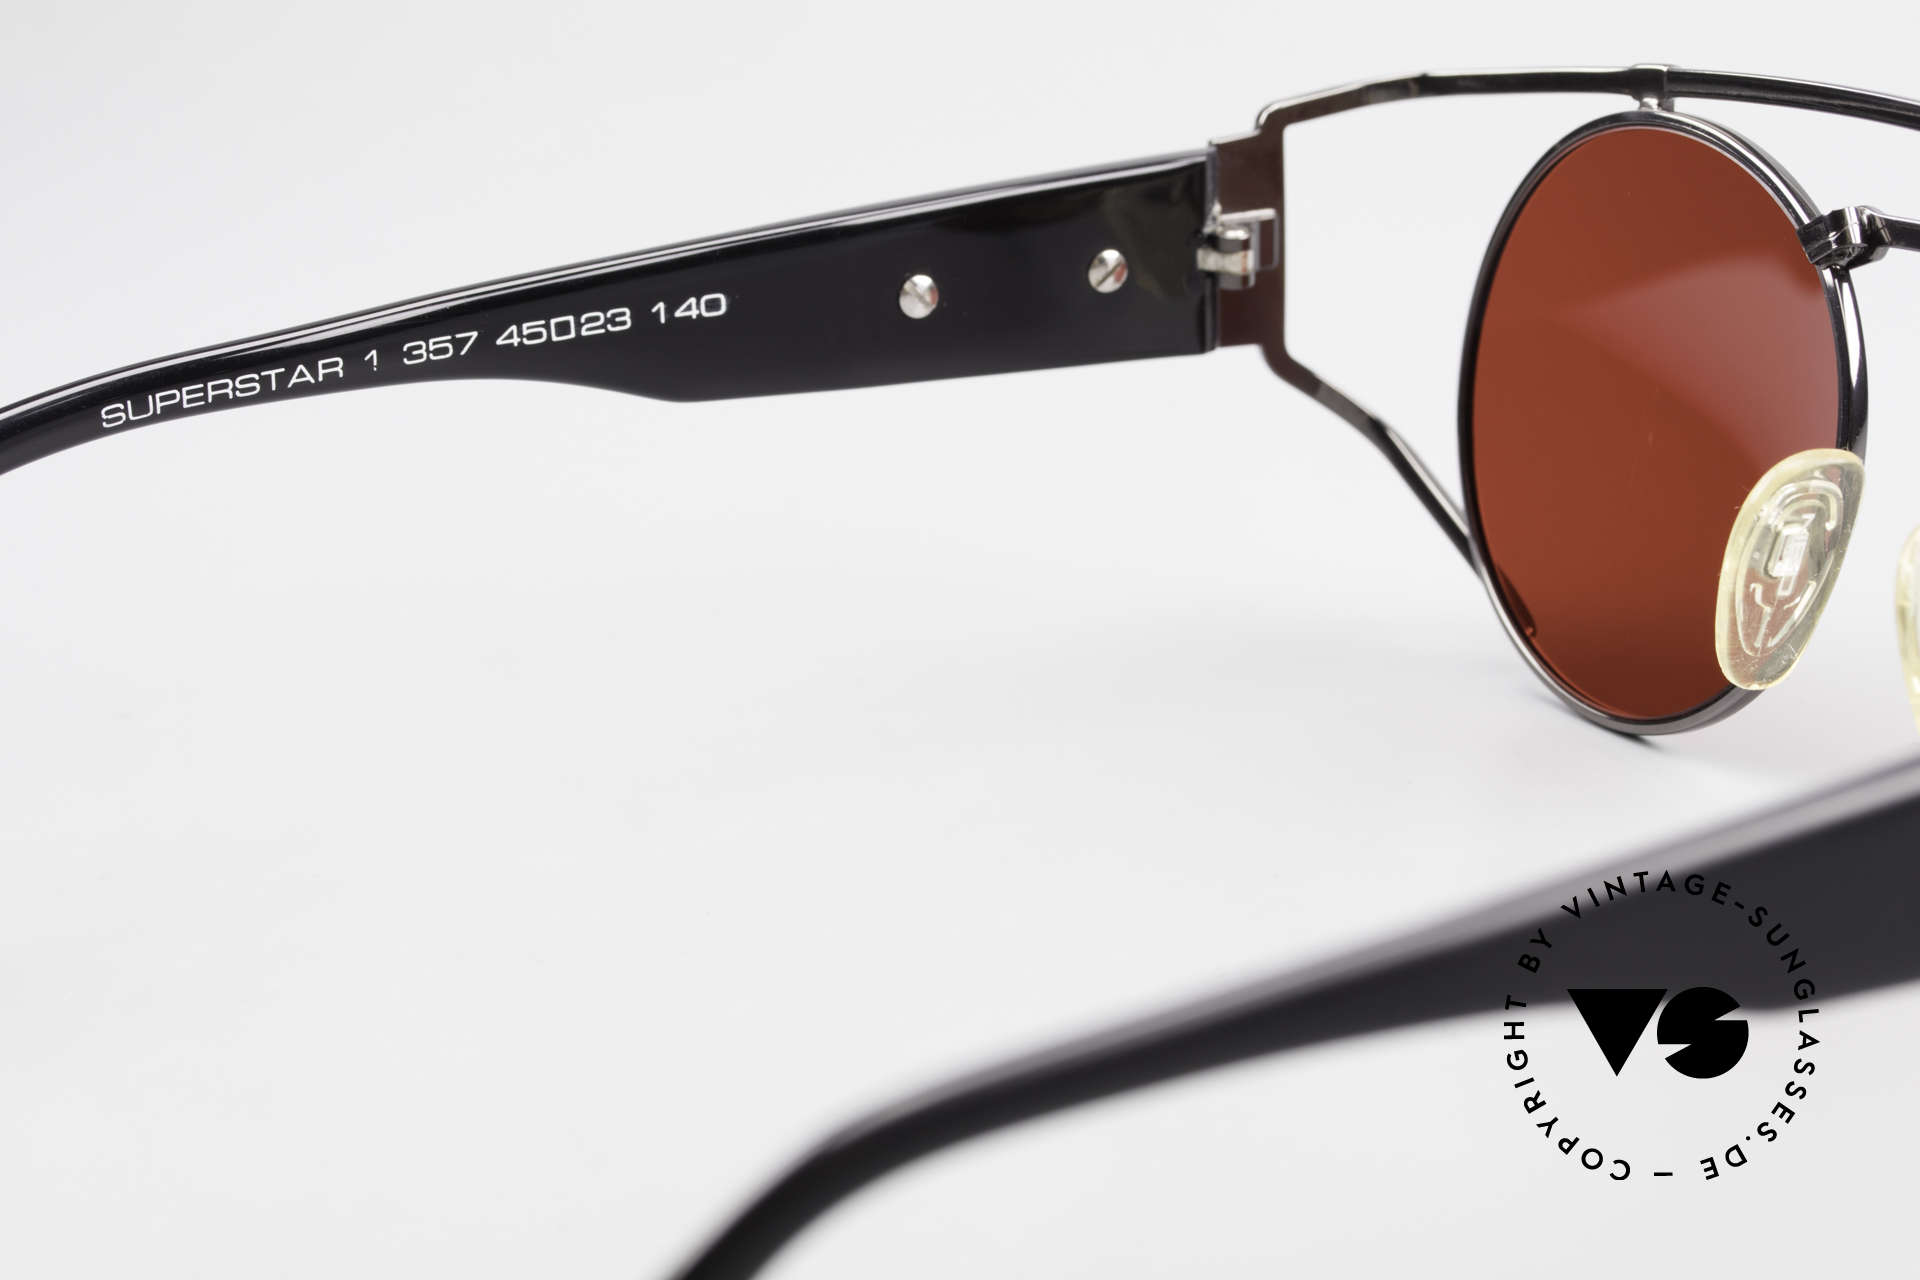 Neostyle Superstar 1 Steampunk Sunglasses 3D Red, NO RETRO sunglasses, but a rare old 90's original, Made for Men and Women